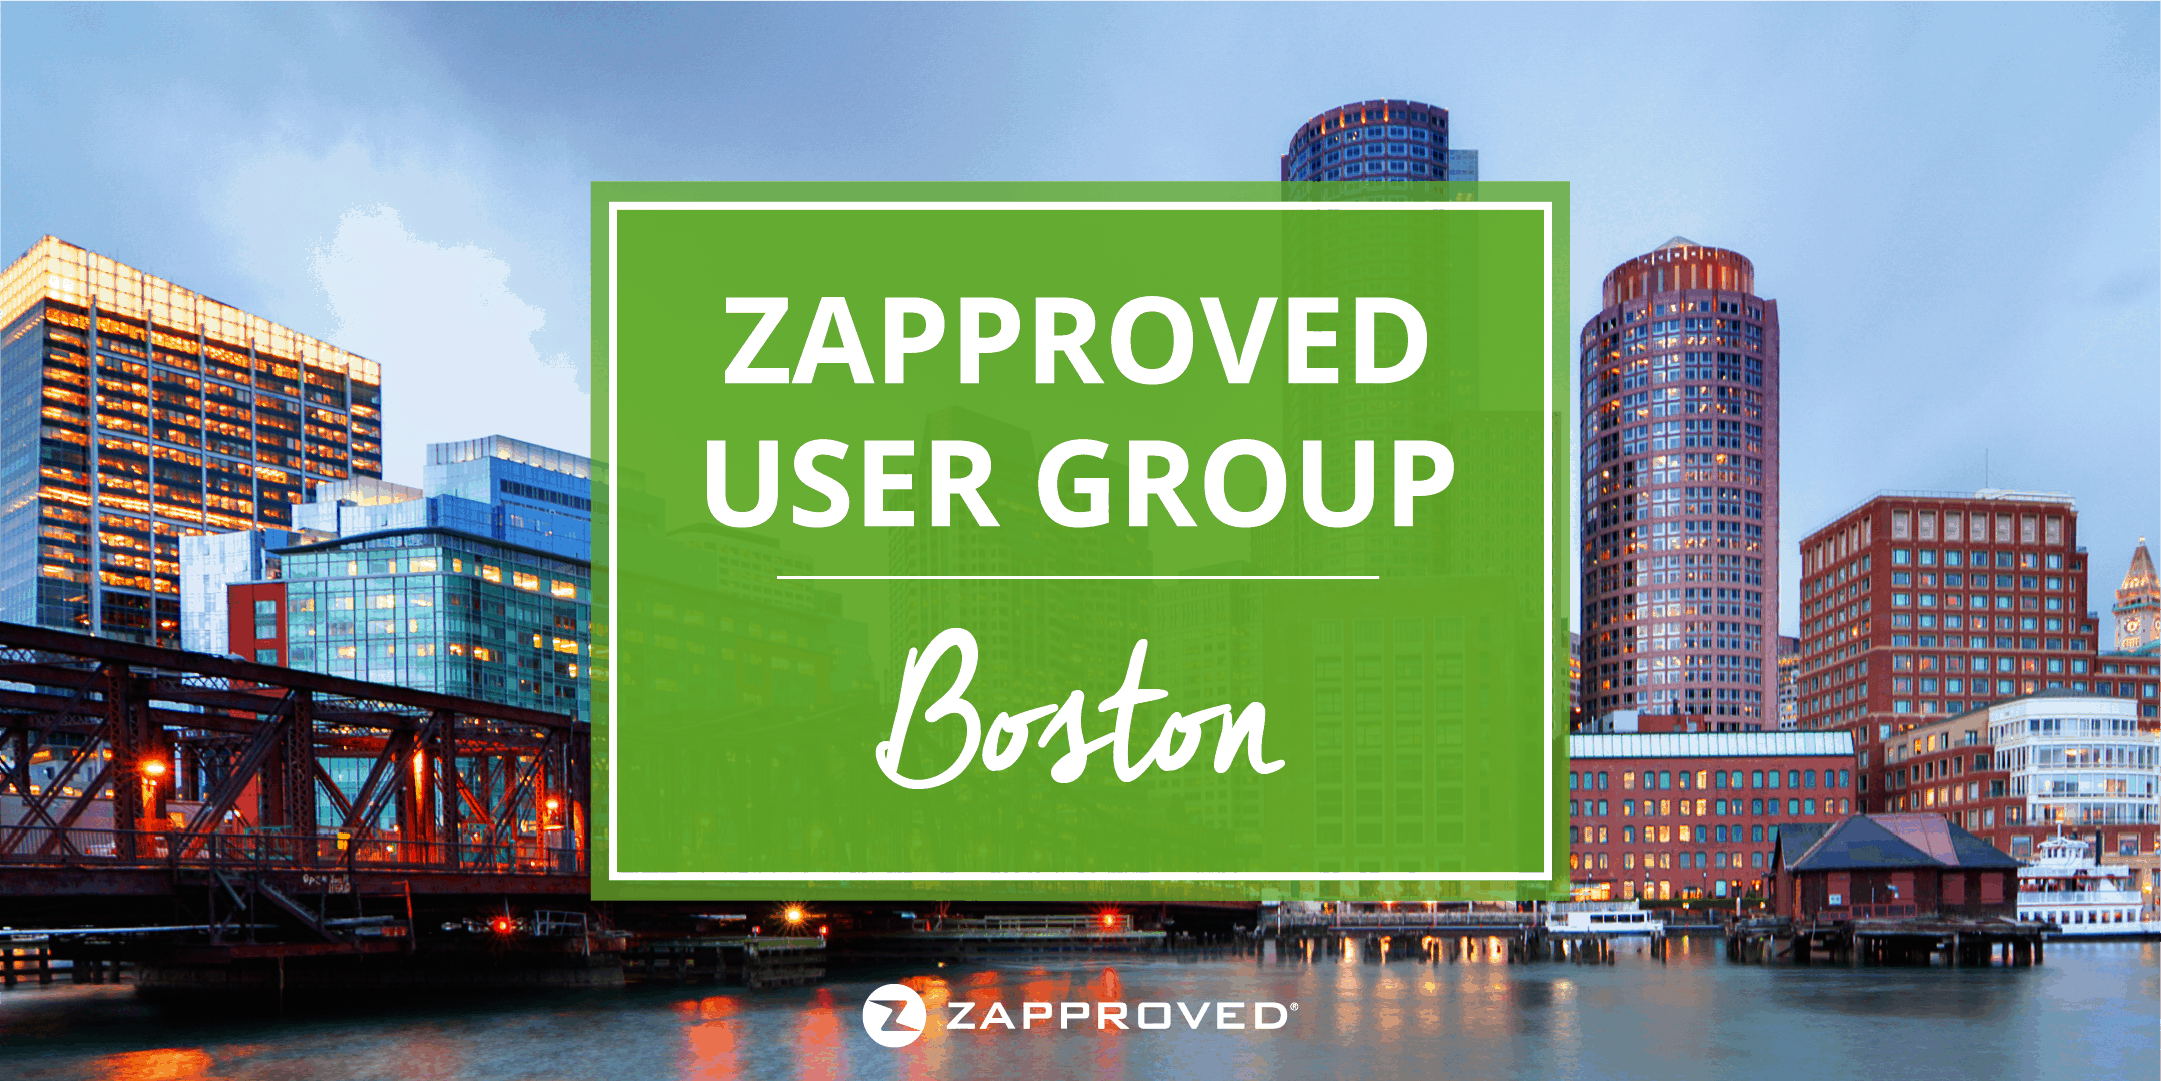 Zapproved User Group | June 2018 in Boston